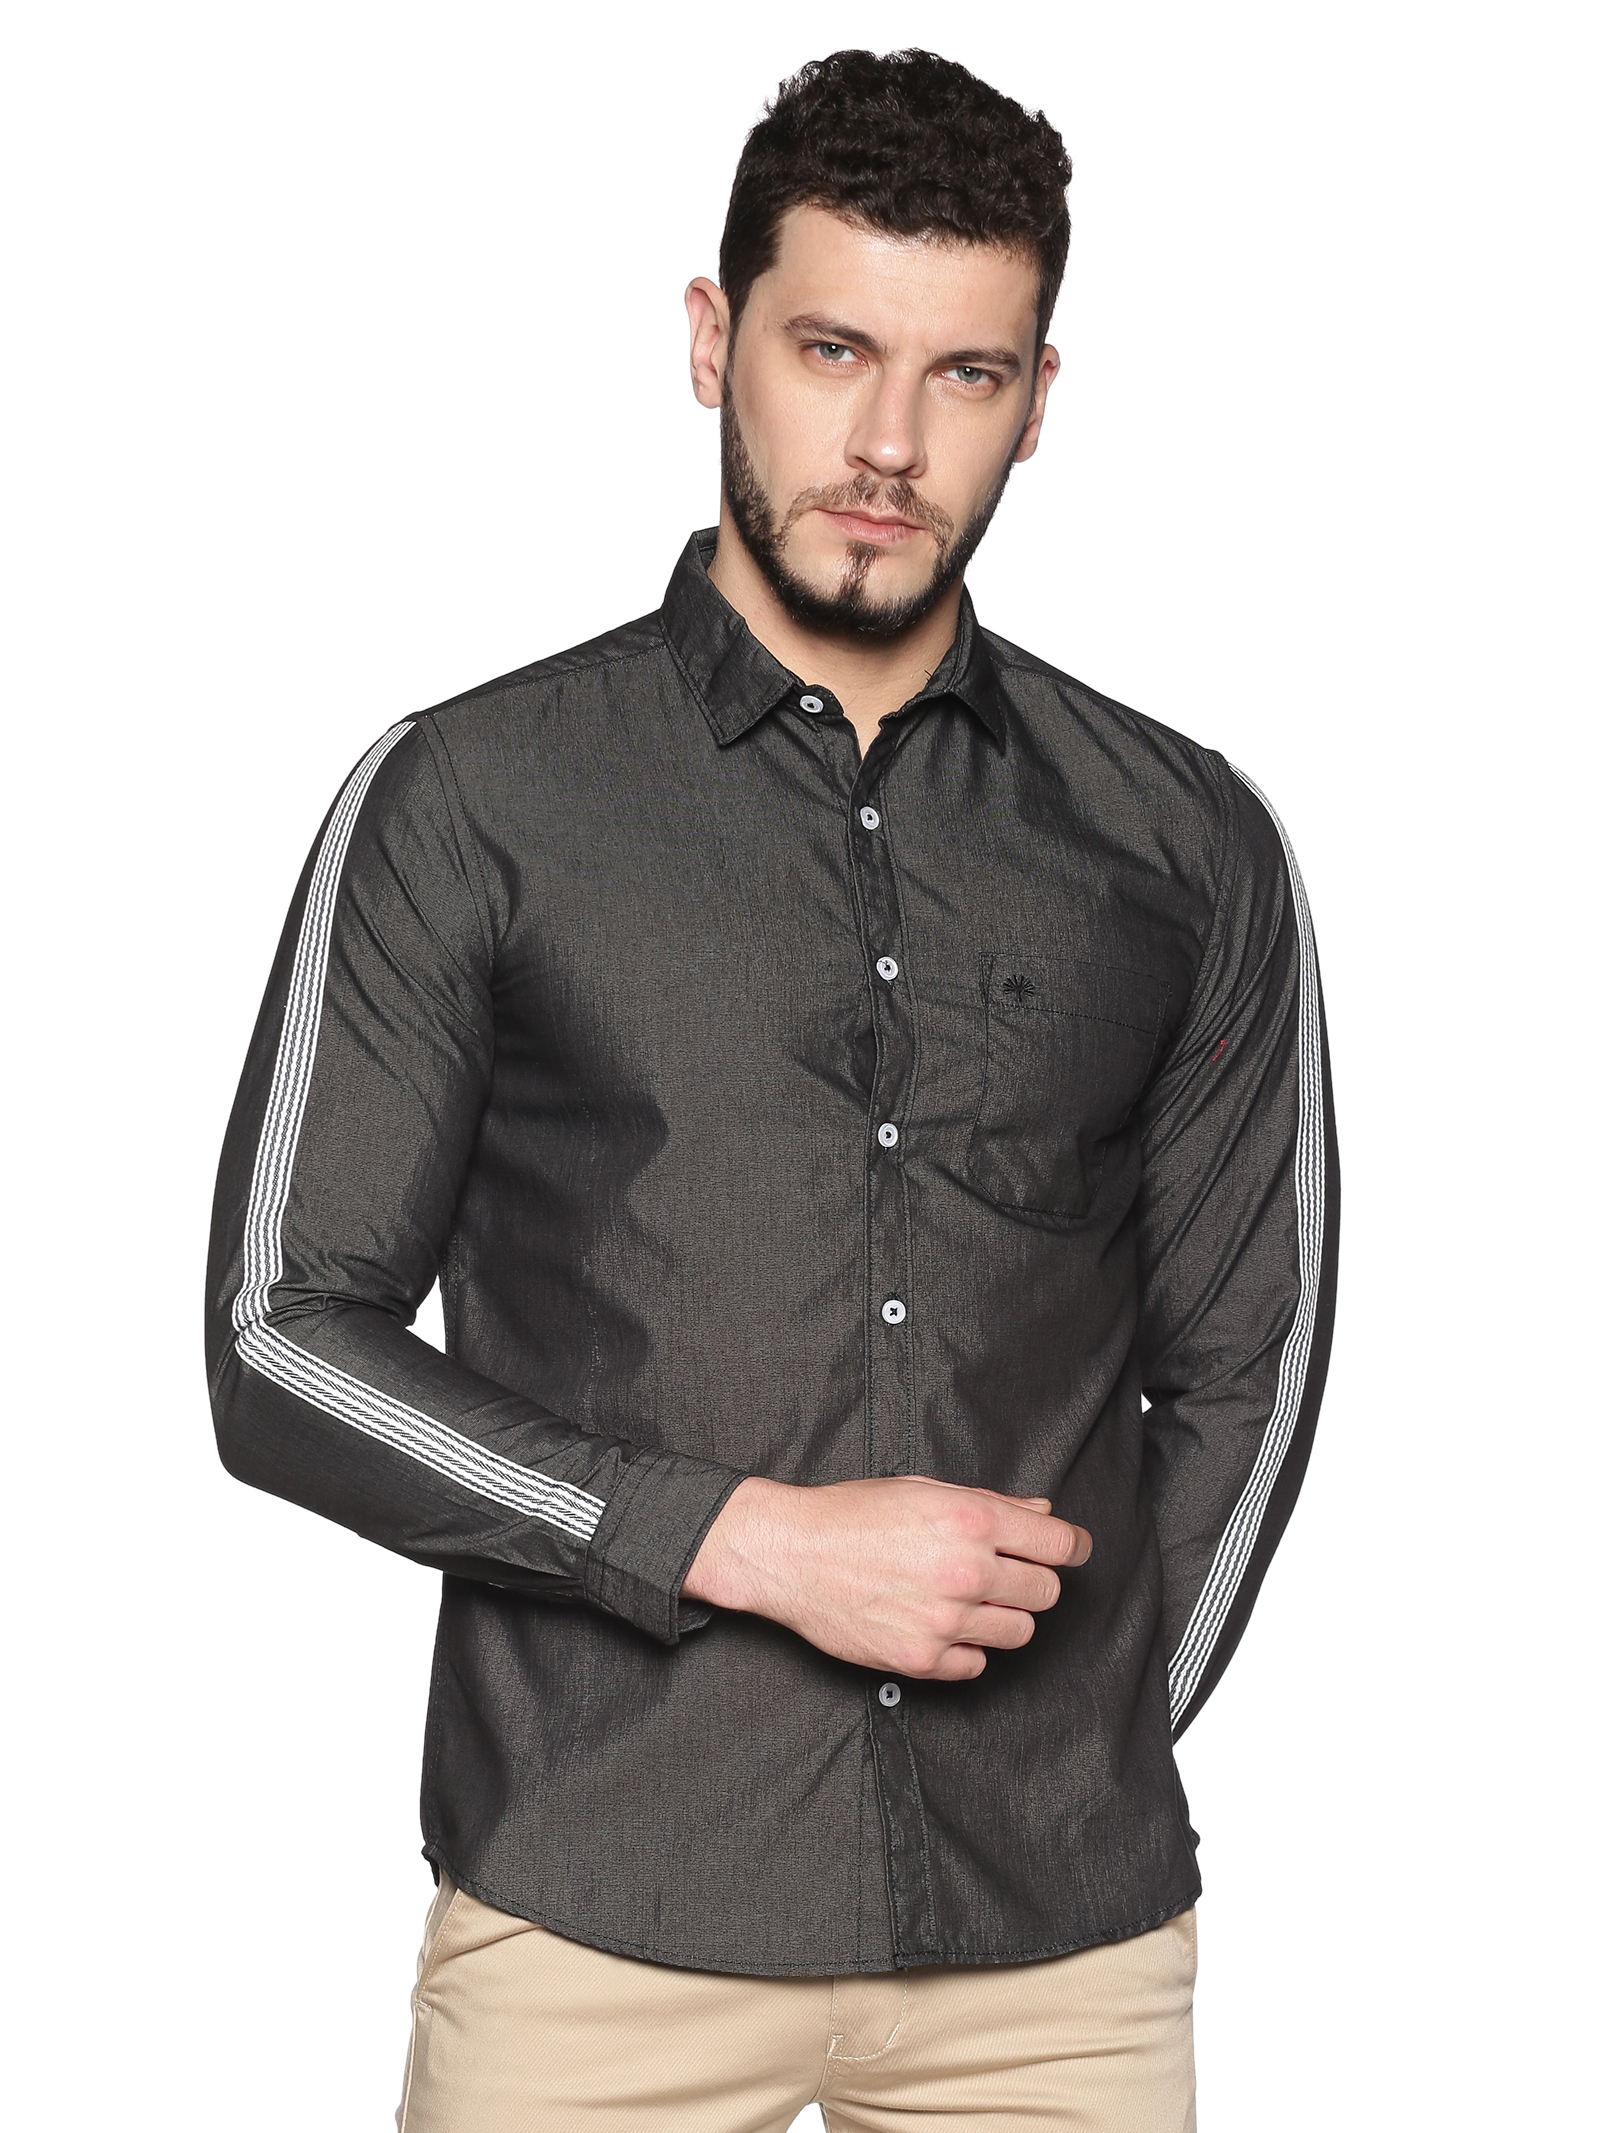 Chennis | Chennis Men's Charcoal Cotton Casual Shirt With Side Tape on Sleeves